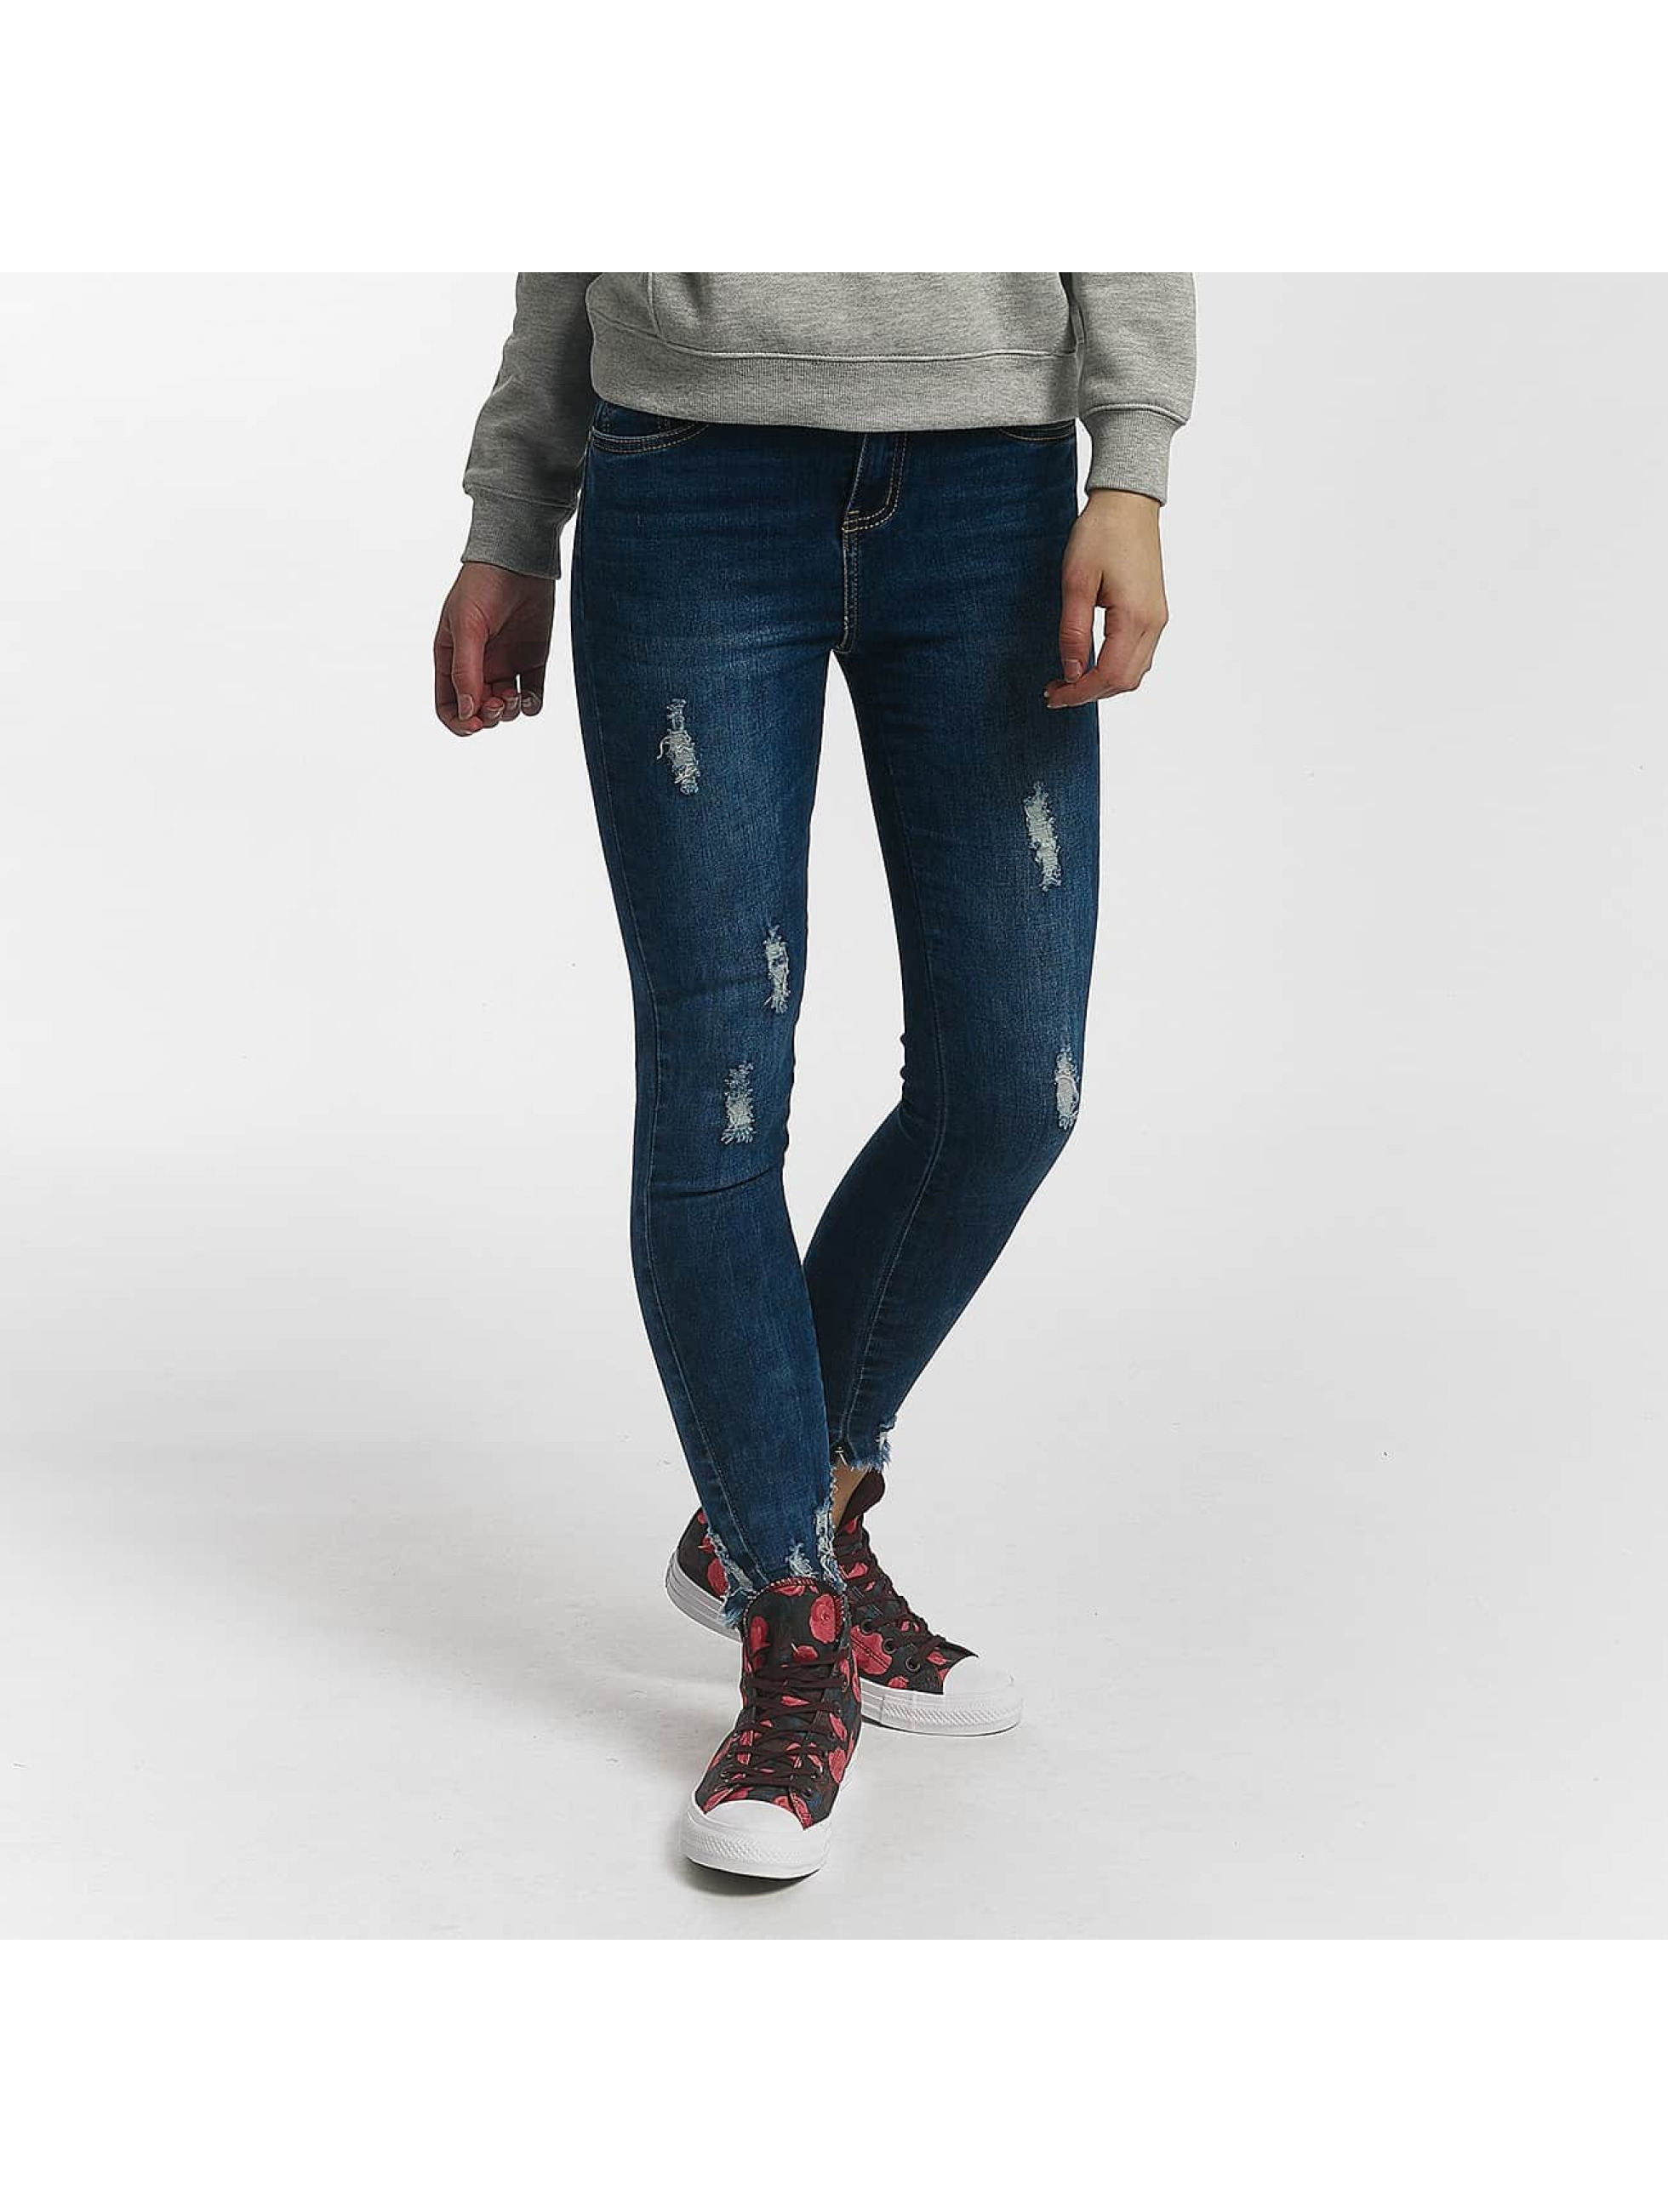 Leg Kings Skinny Jeans Misses RT niebieski